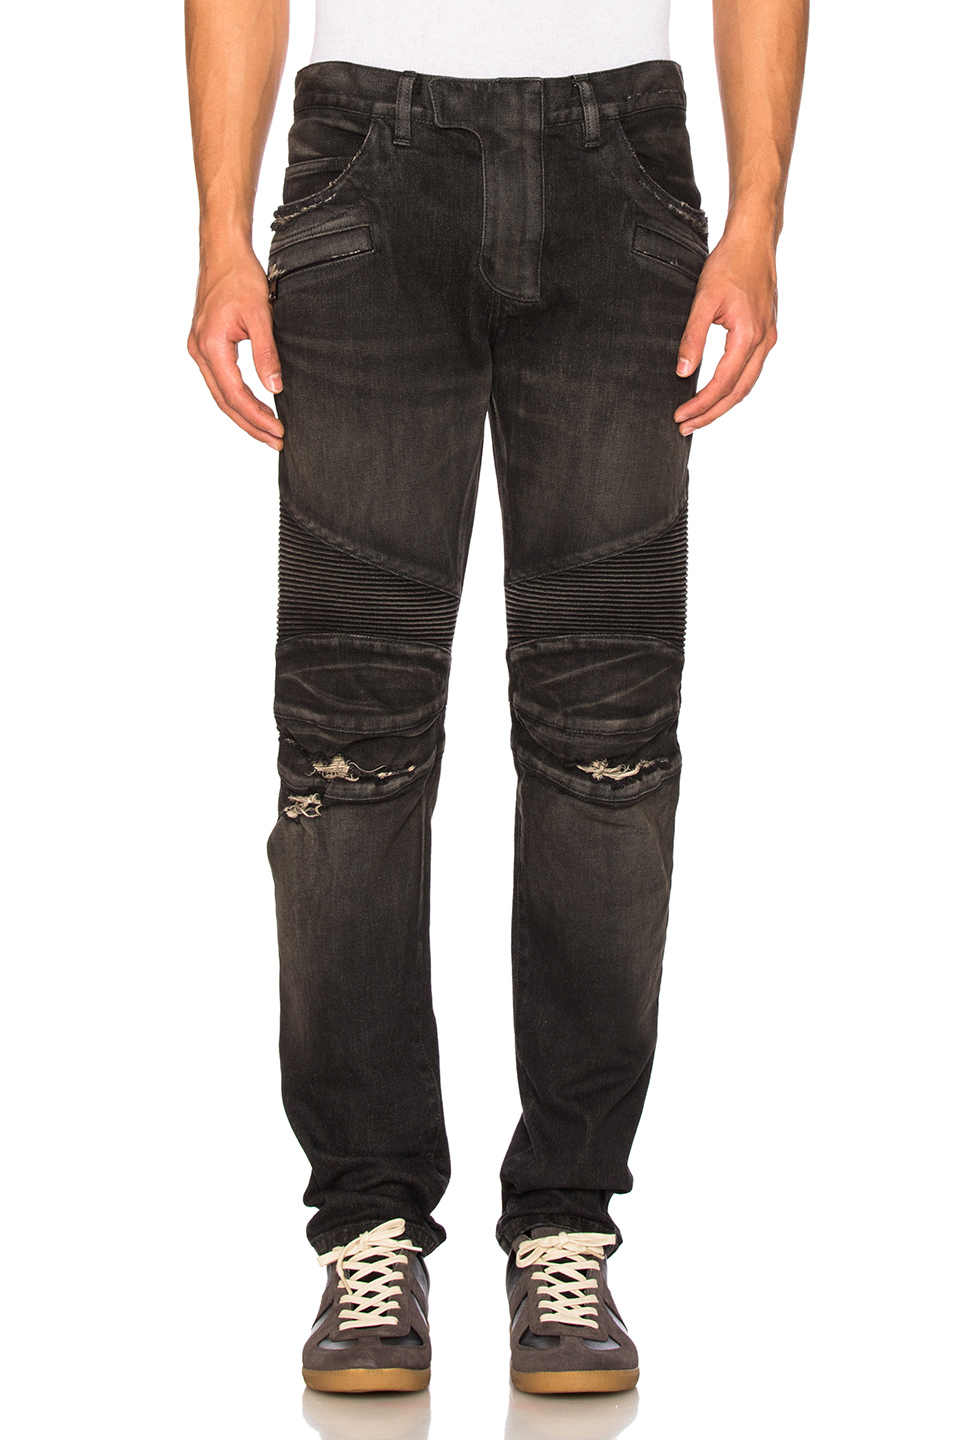 BALMAIN Biker Stretch Jeans in Black